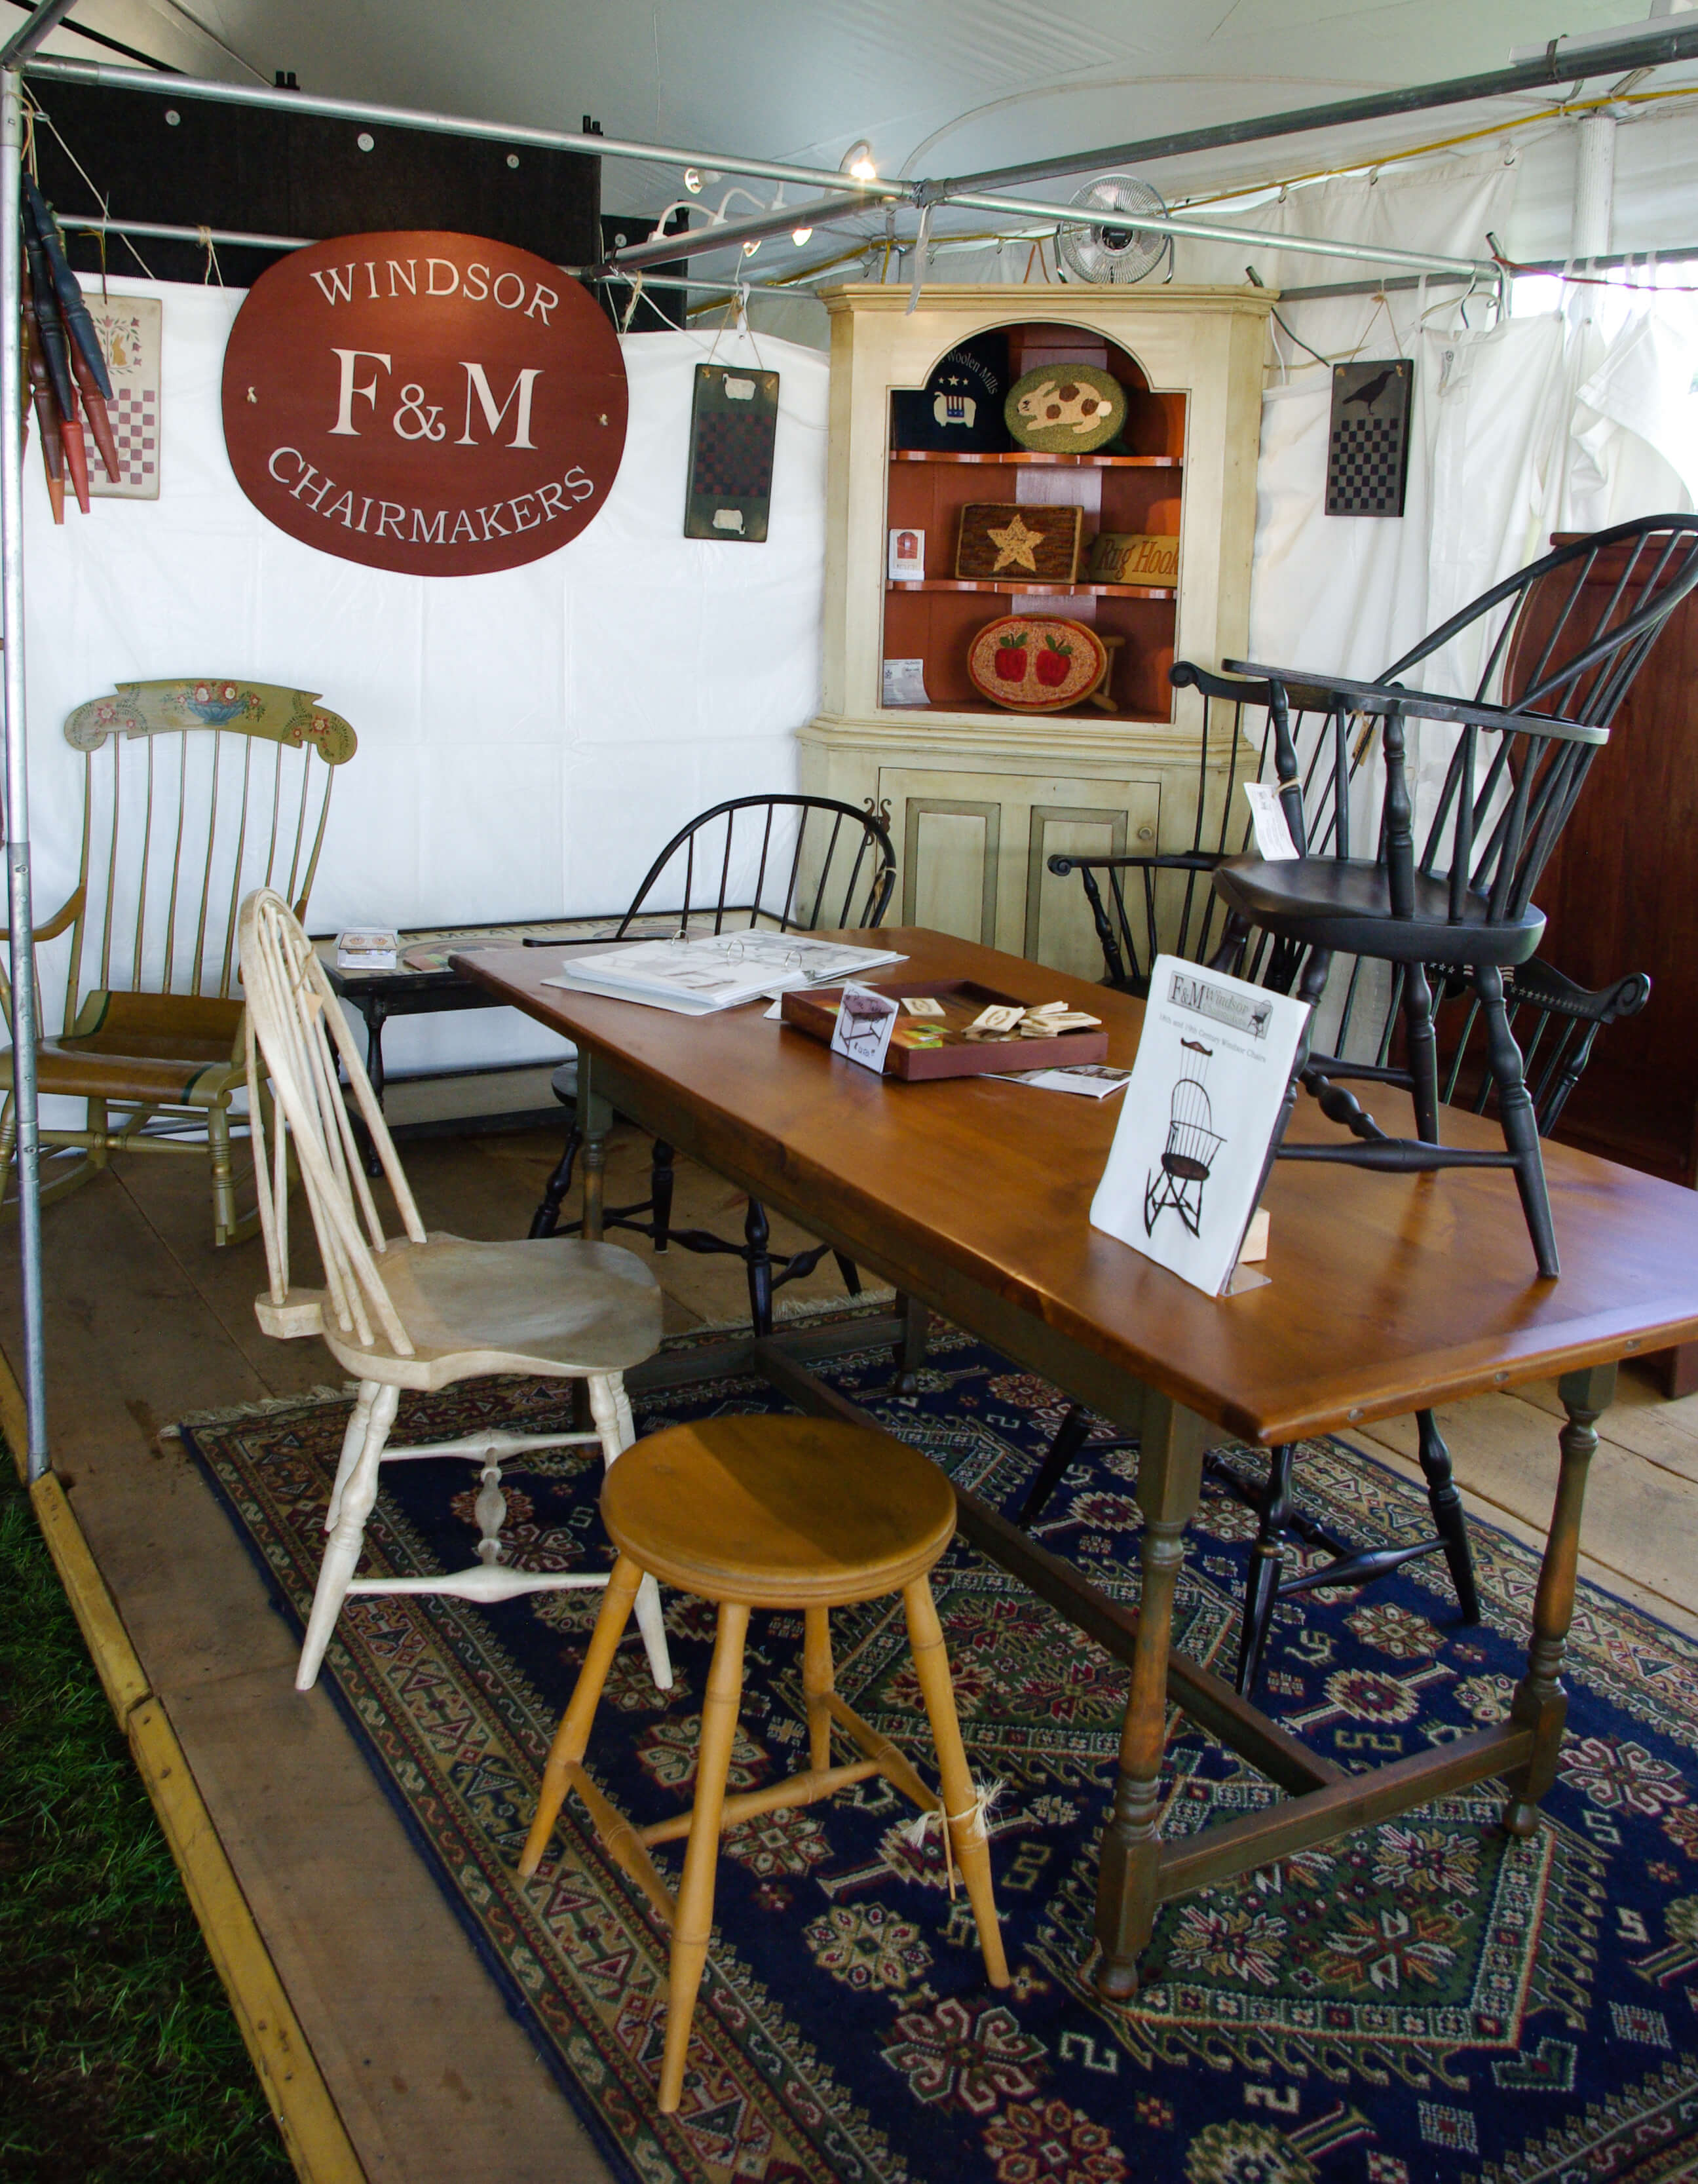 Handmade Country Chairs At The Woodstock New Paltz Art Crafts Fair F M Chairmakers